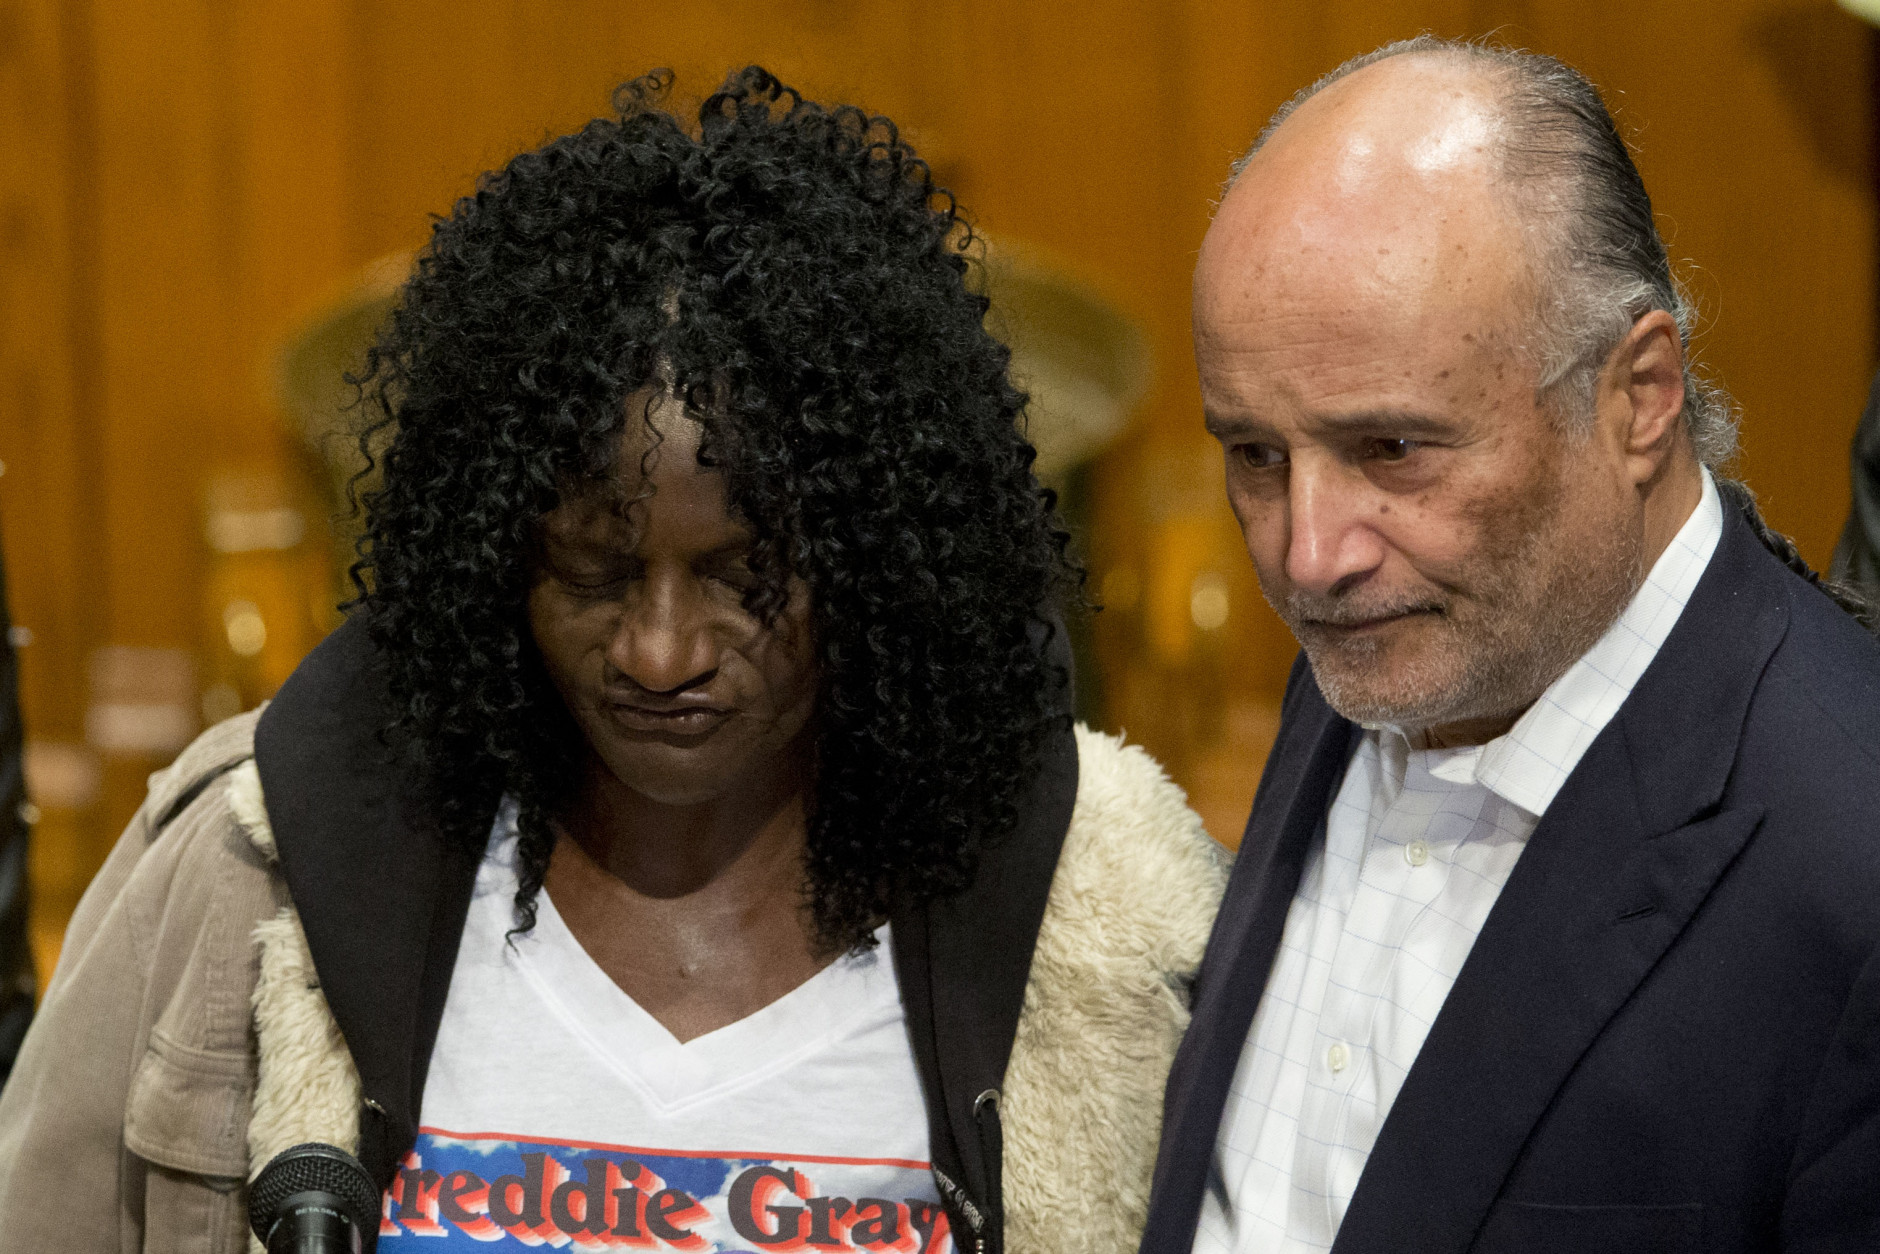 Gloria Darden, left, mother of Freddie Gray, gathers with family attorney Billy Murphy and clergy for a news conference, Monday, April 27, 2015, in Baltimore. Rioters plunged part of Baltimore into chaos torching a pharmacy, setting police cars ablaze and throwing bricks at officers. (AP Photo/Matt Rourke)